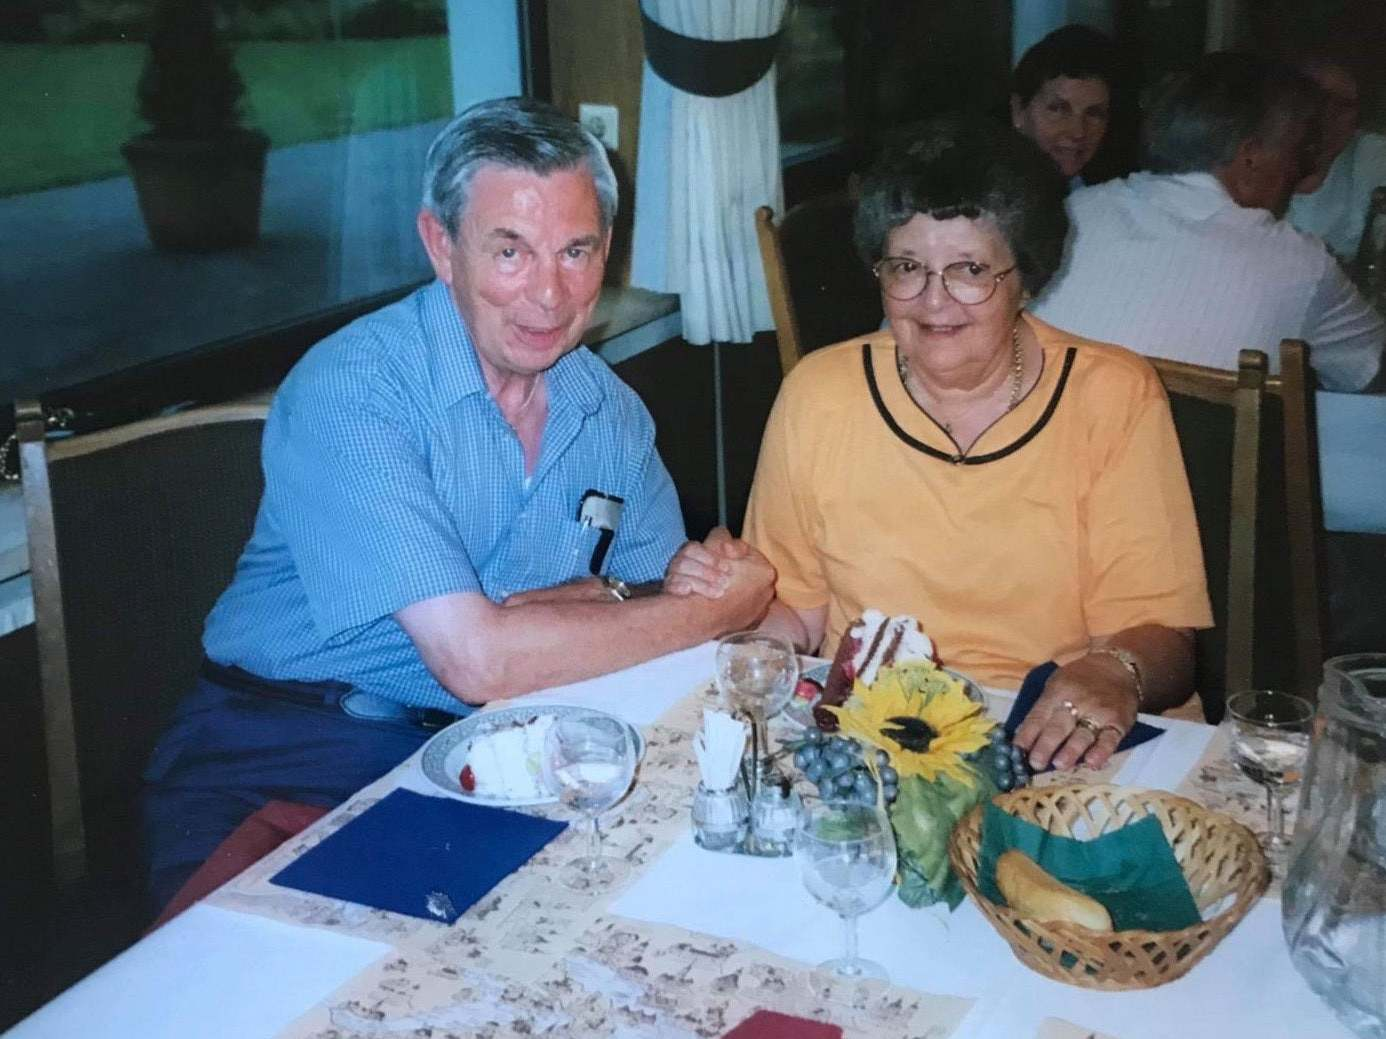 Care home resident recreates first date with wife nearly 68 years later for Valentine's Day